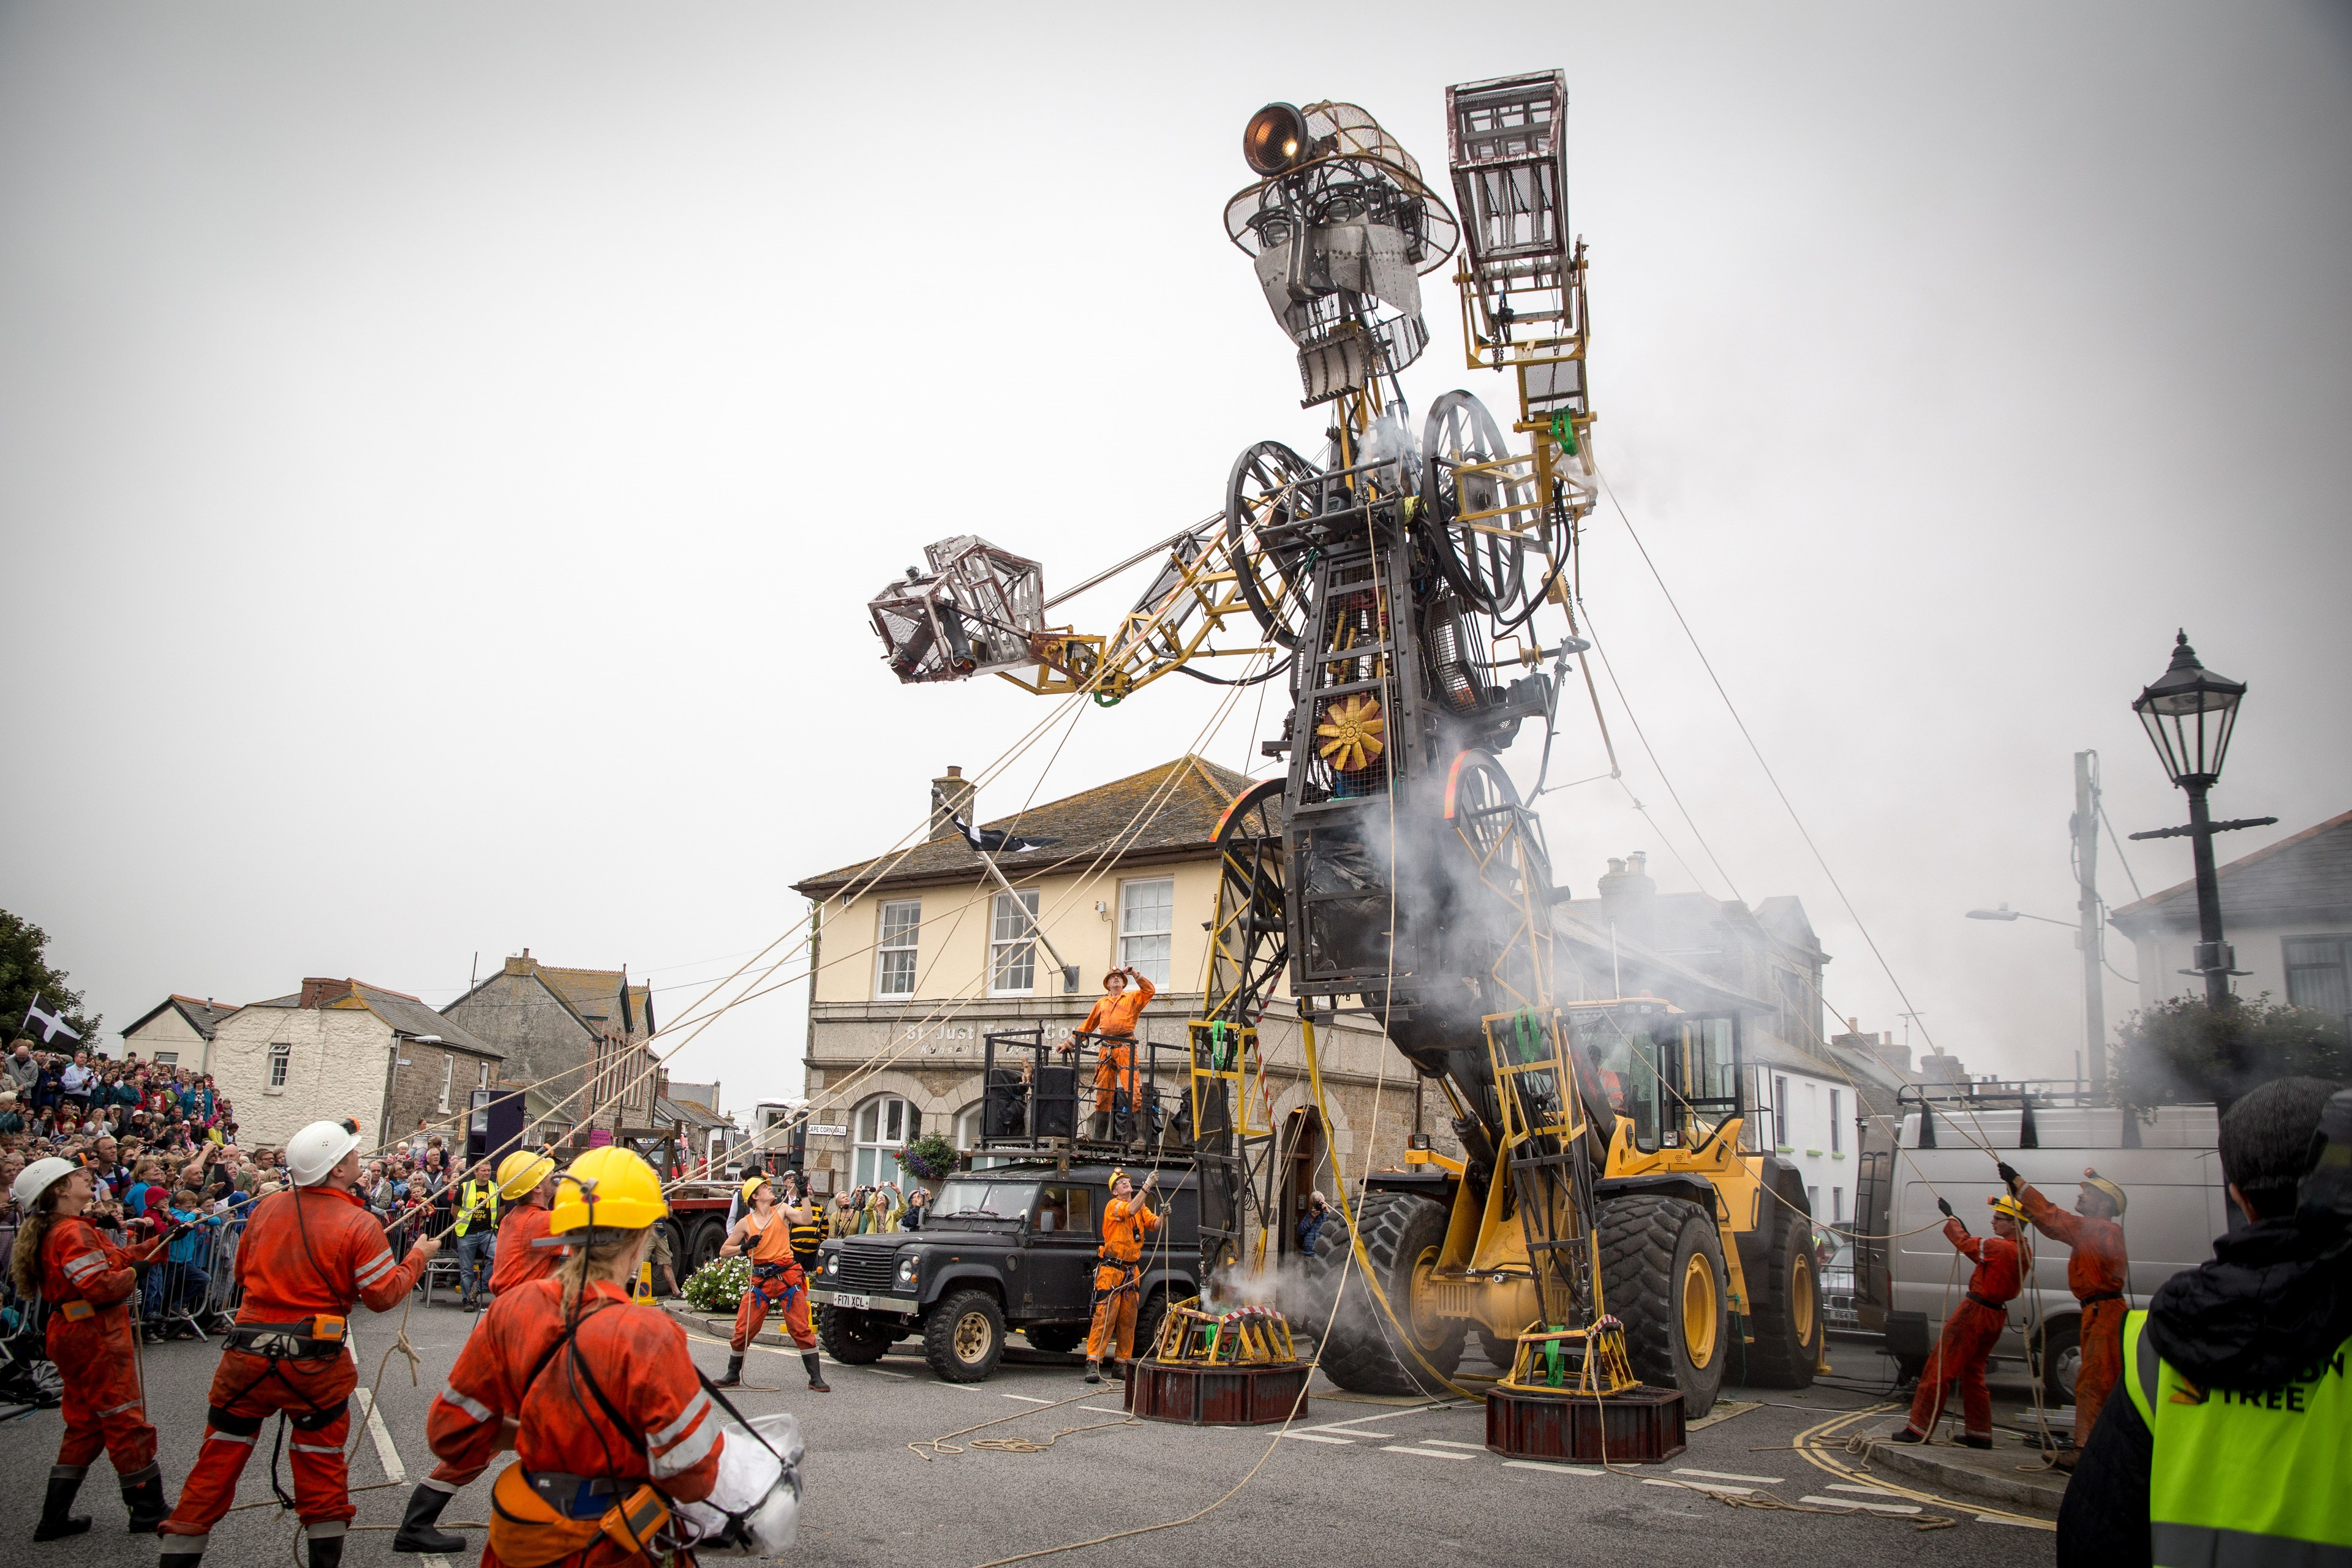 The Man Engine is Coming to Blists Hill Victorian Town, Ironbridge